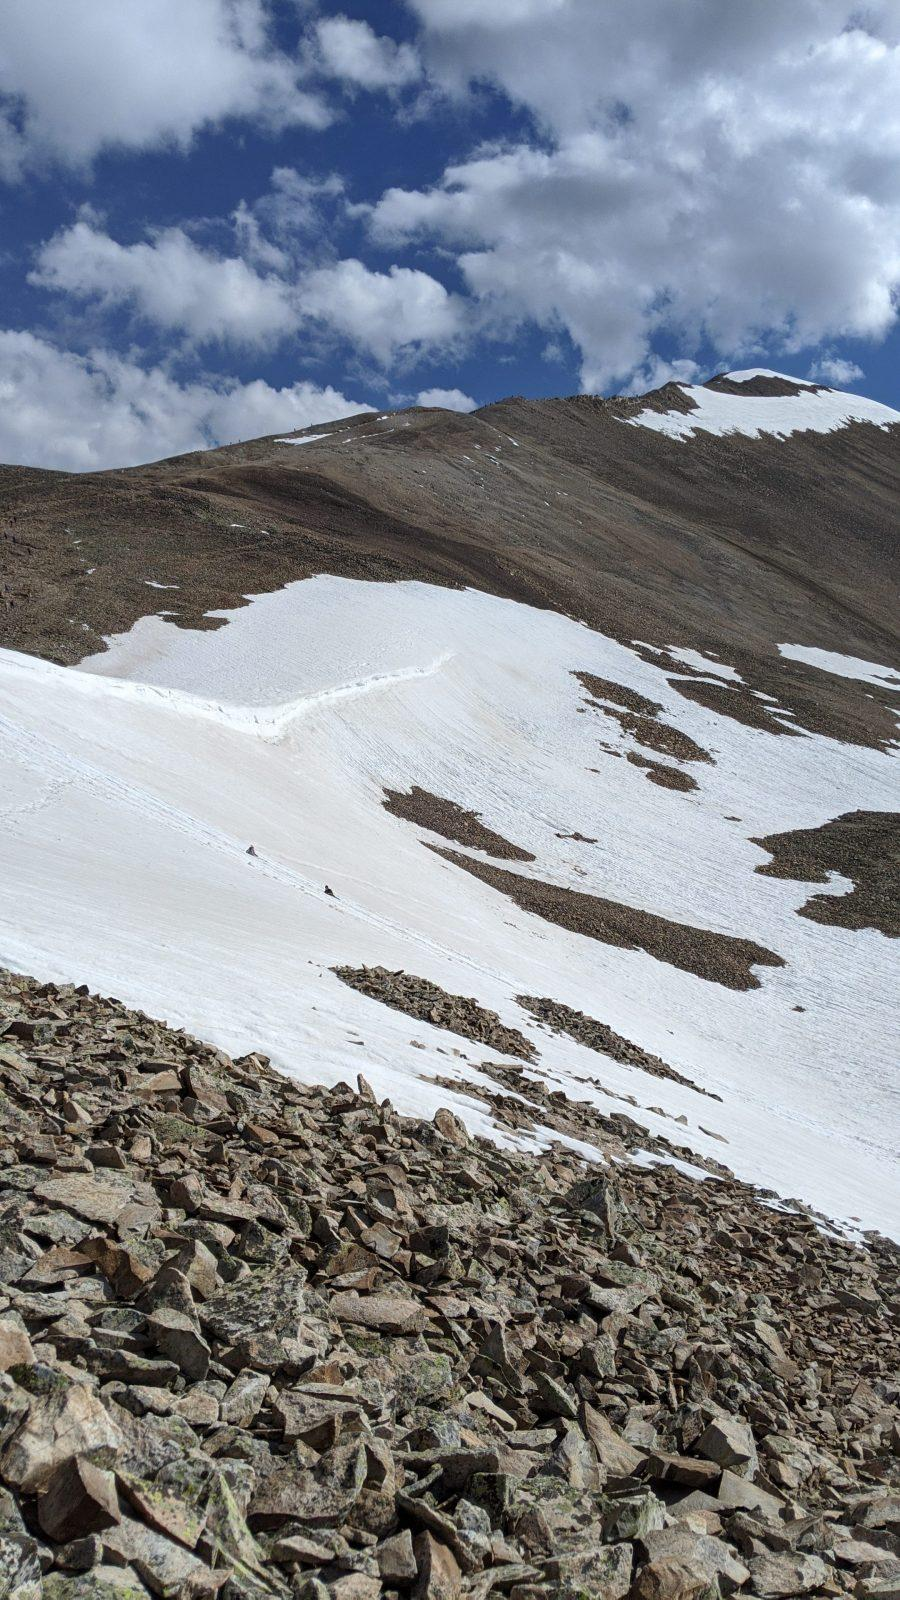 hikers climbing mount sherman in colorado in the snow